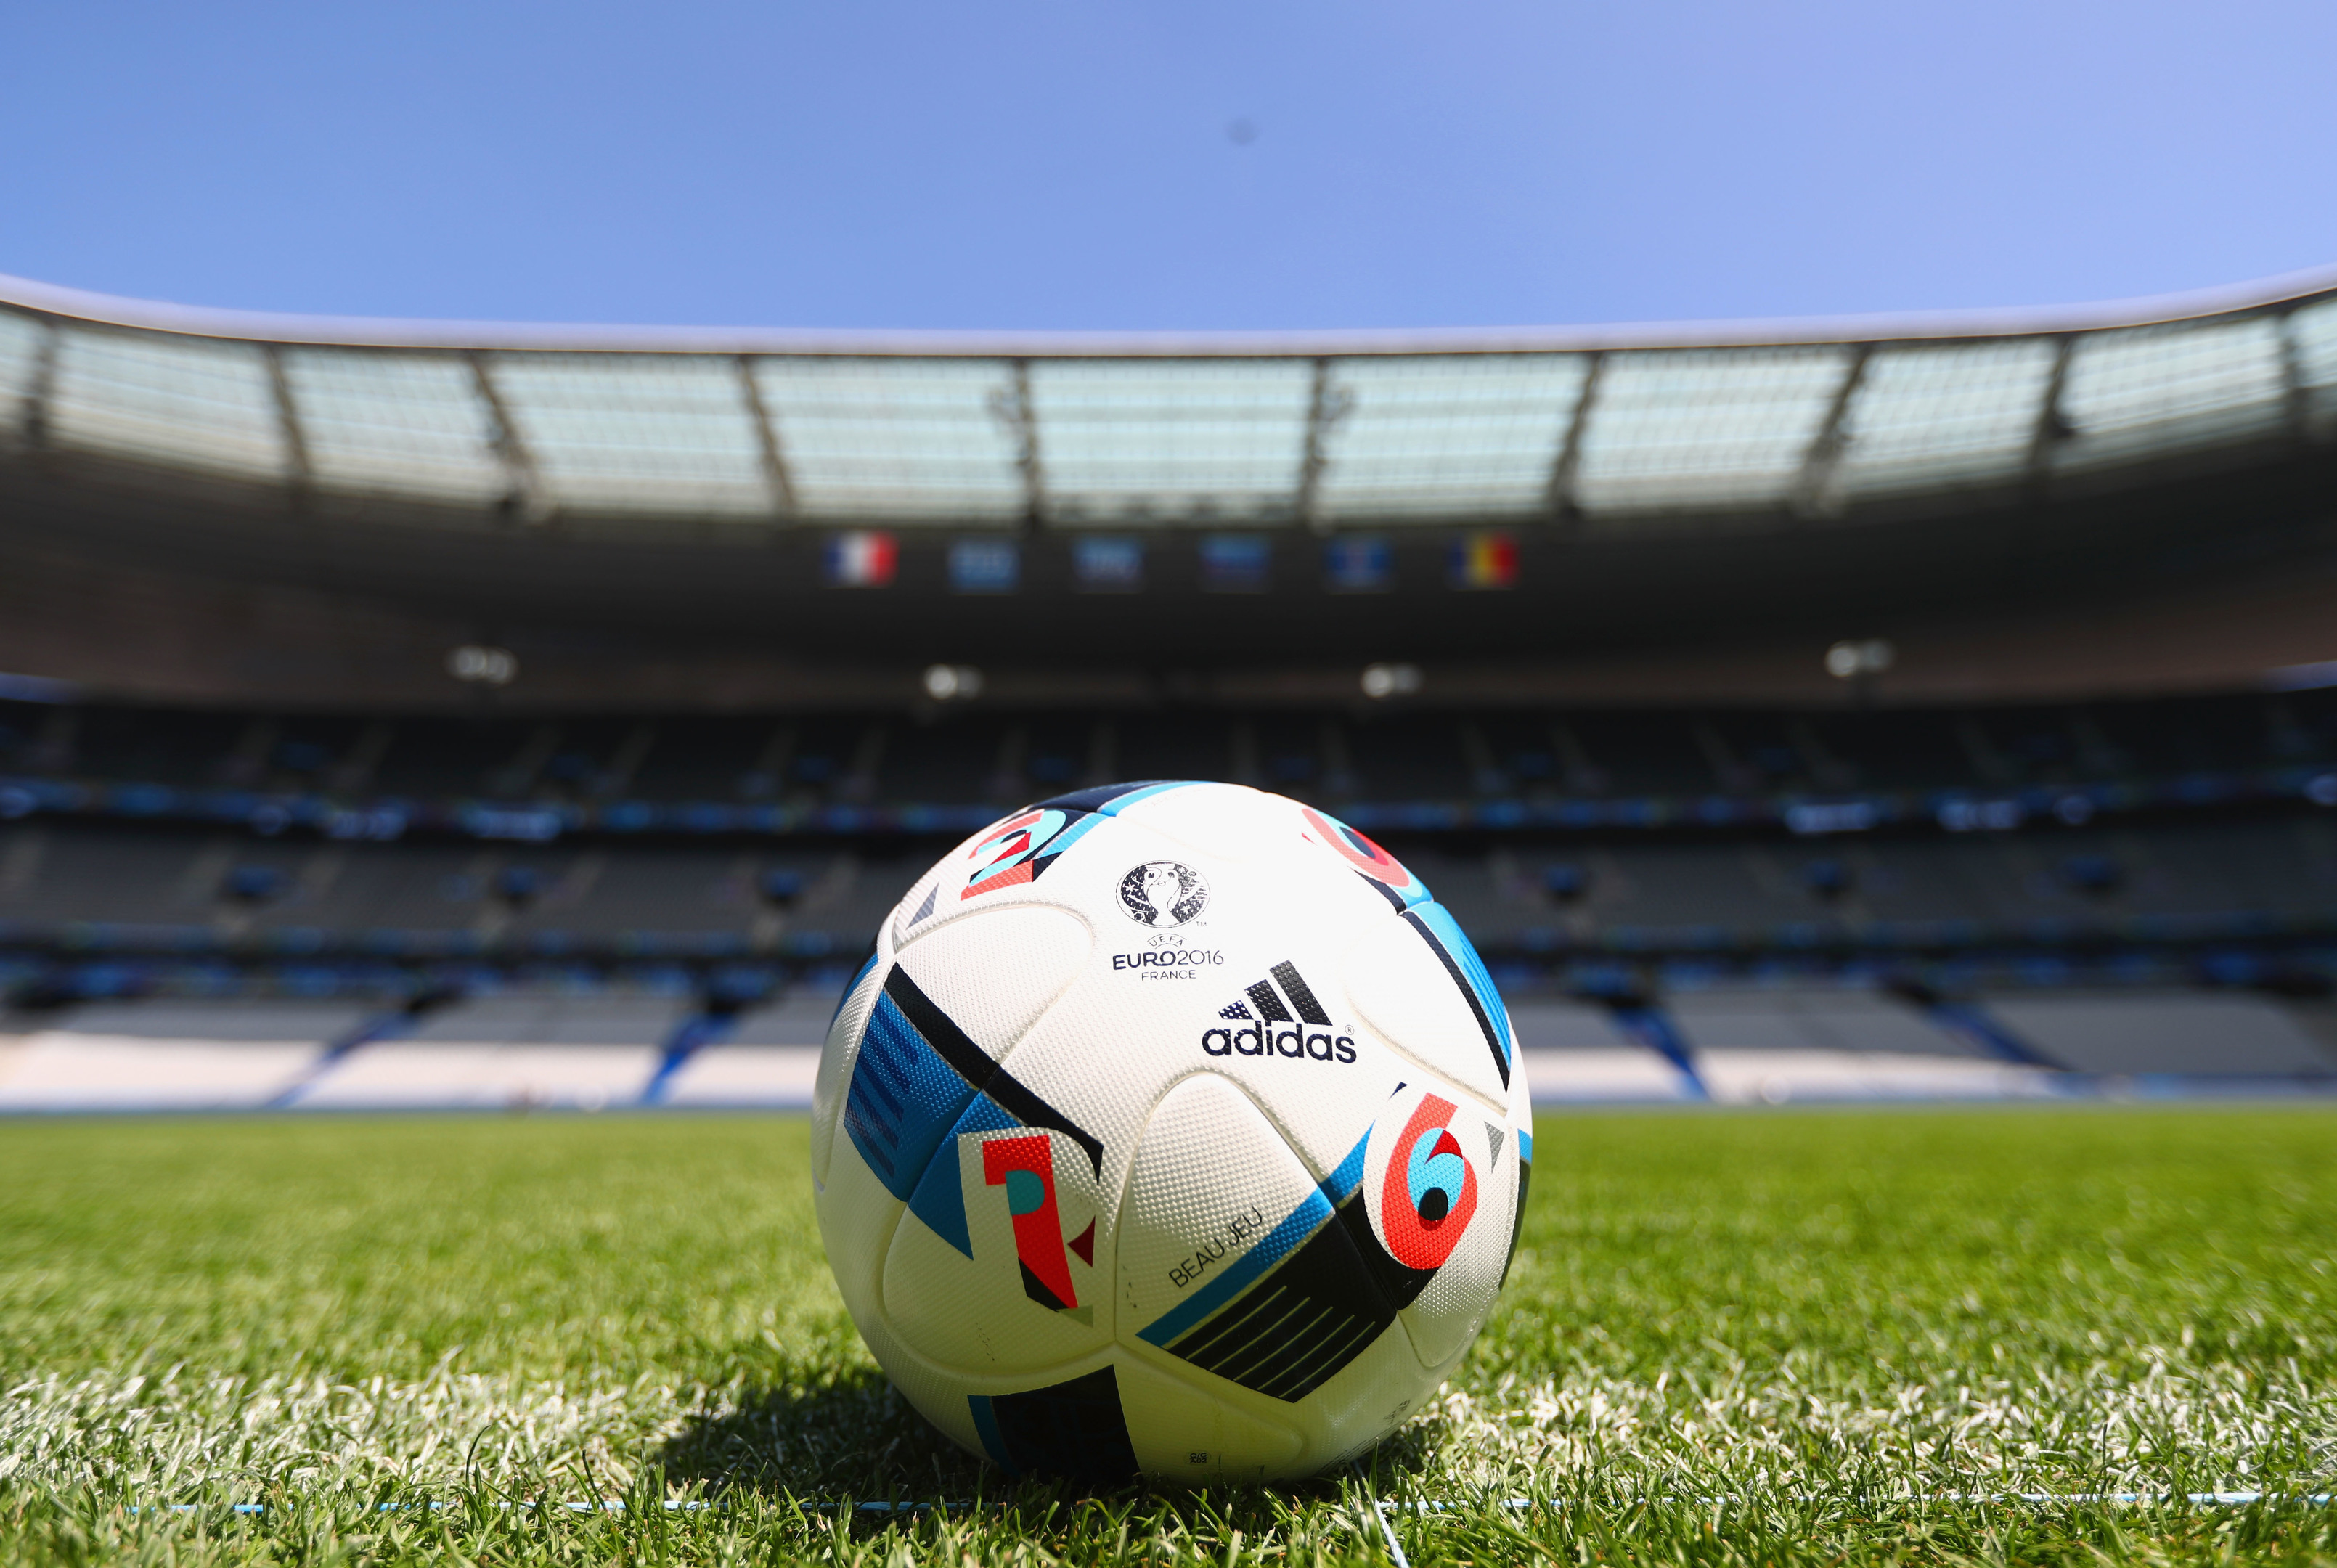 The tournament kicks off today (Clive Rose/Getty Images)